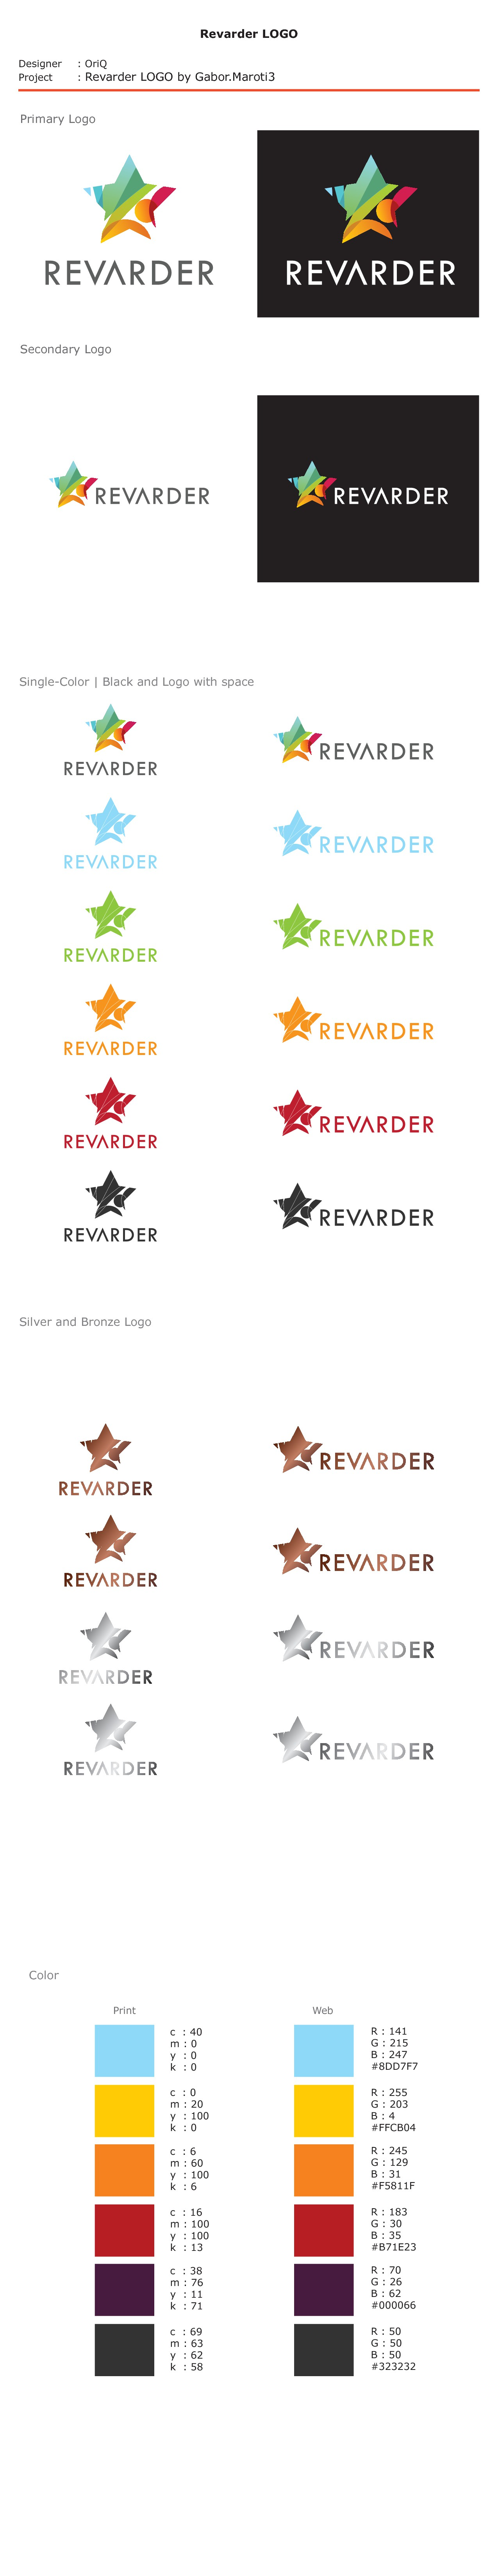 (Logo) Rewards for in-depth reviews